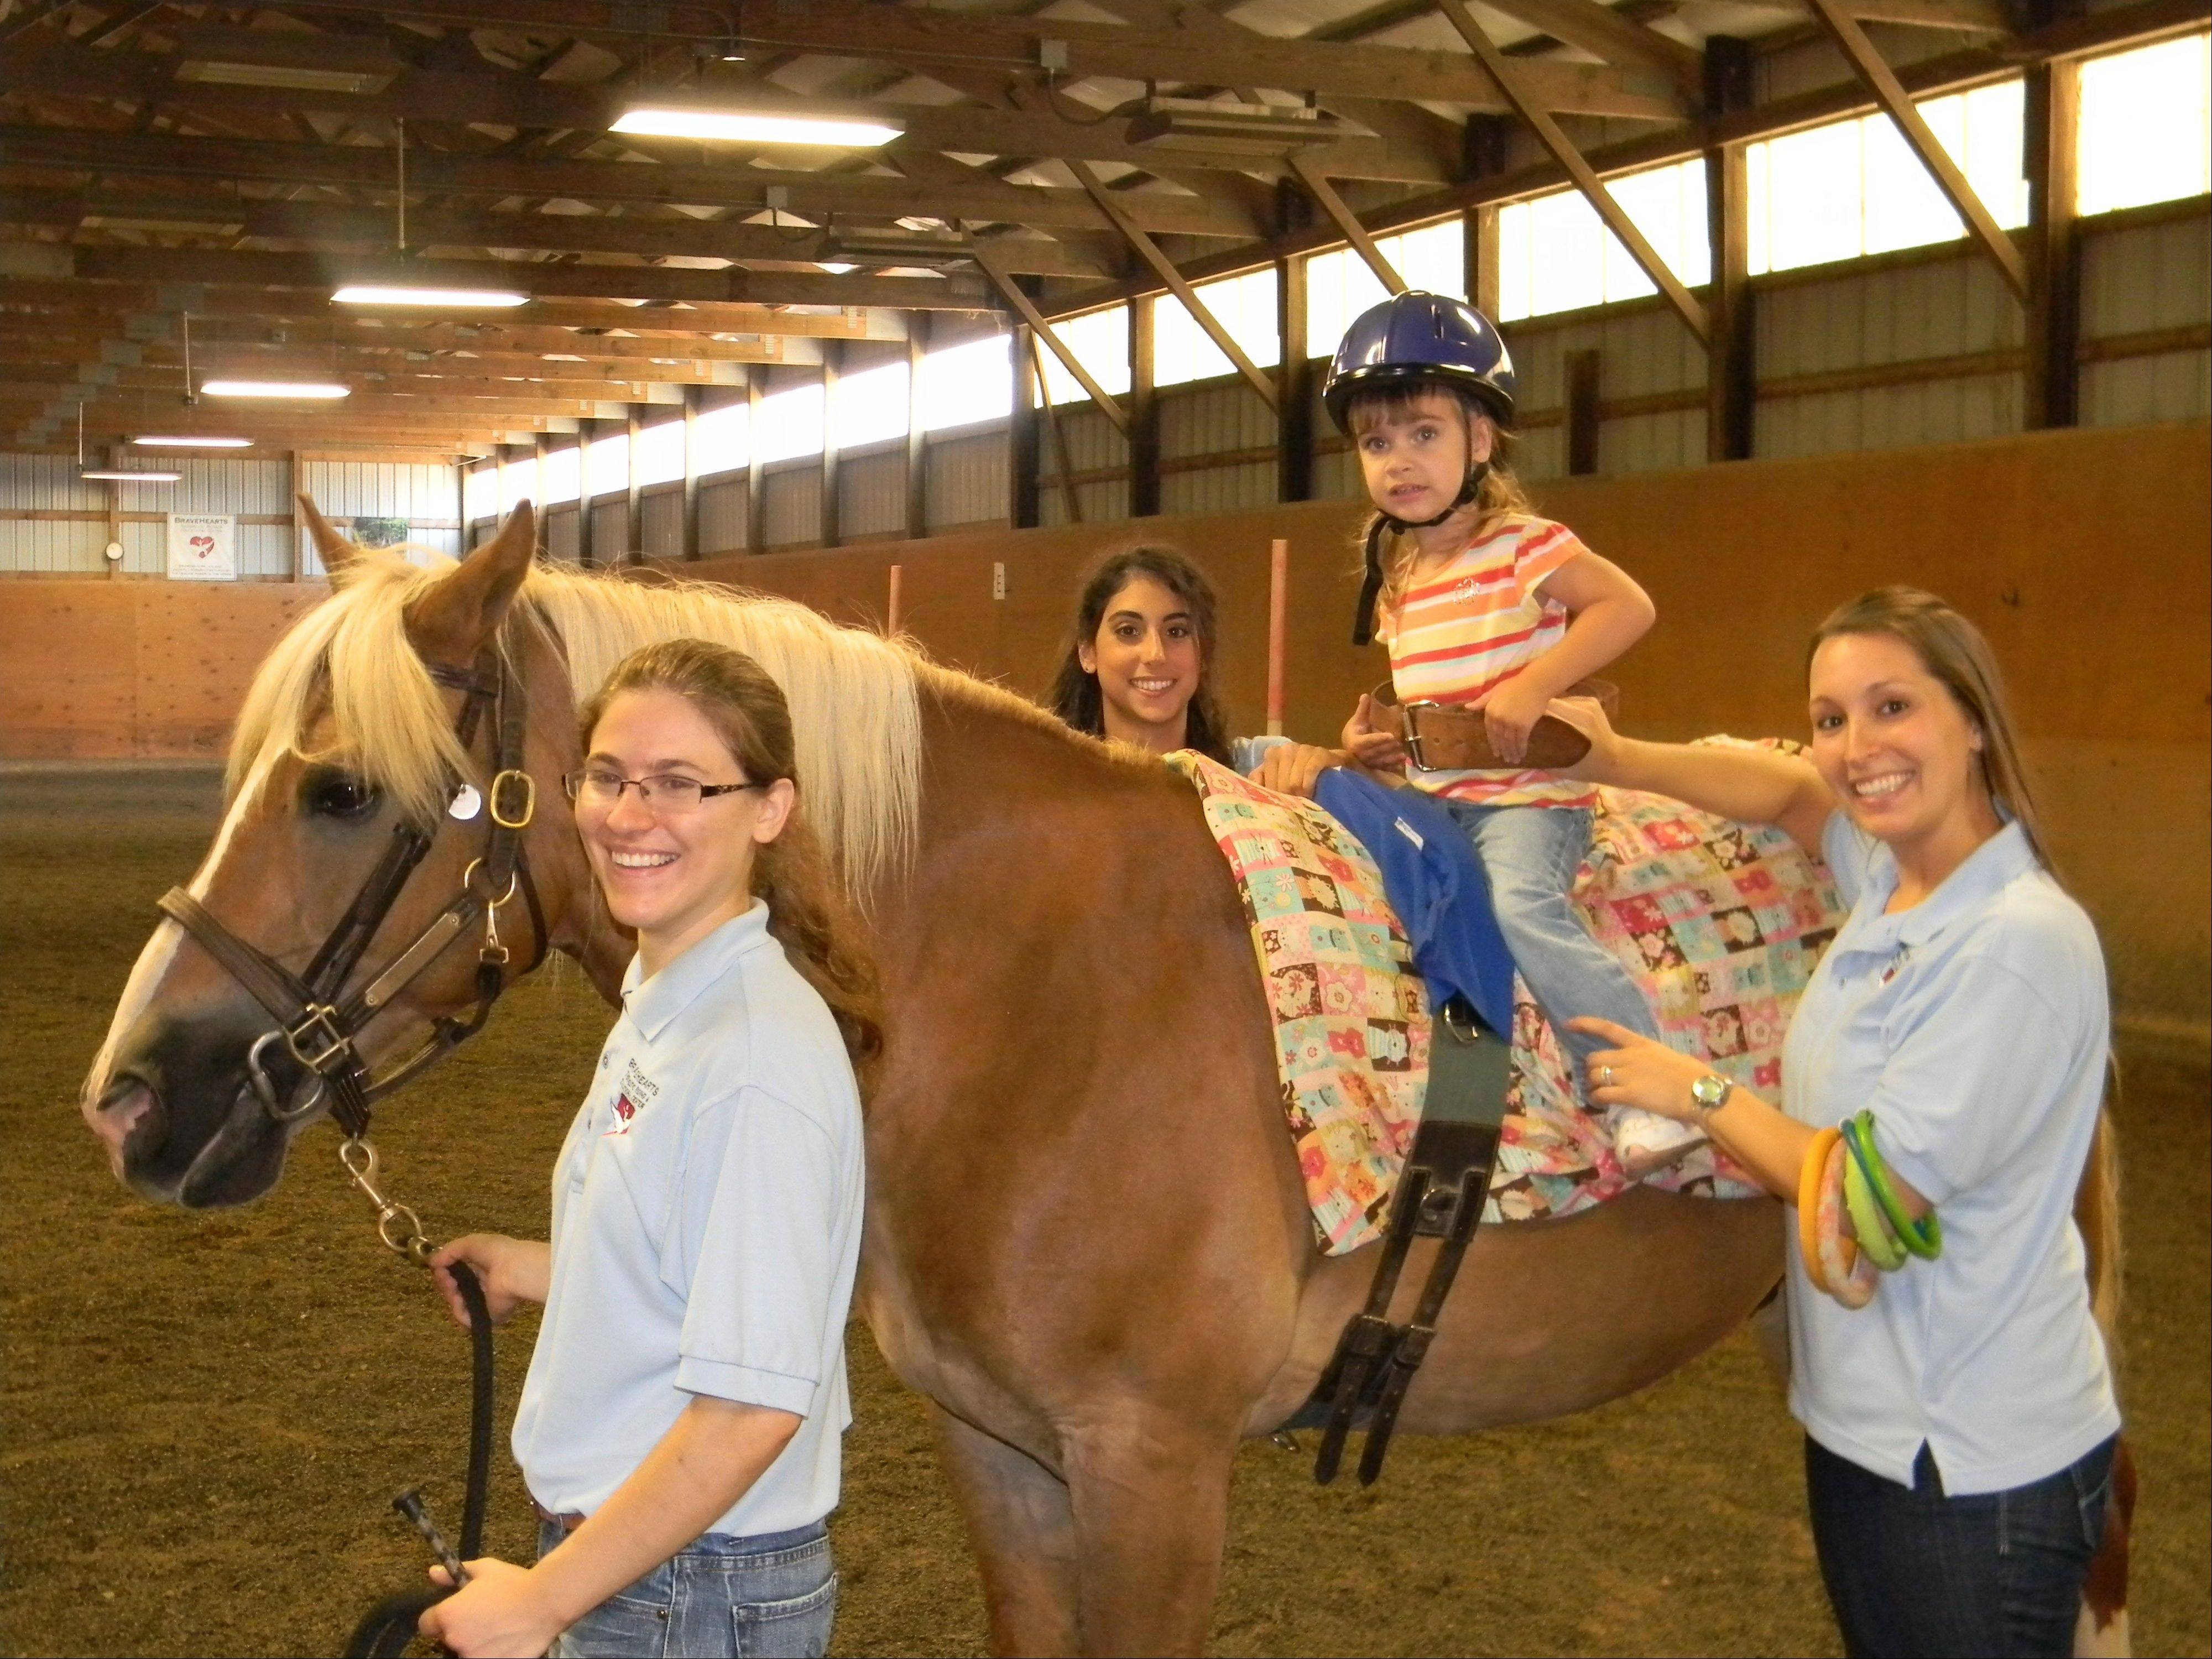 Abbey Ross, 4, is among 200 people building strength and confidence through horseback riding programs offered by BraveHearts Therapeutic Riding and Education Center. The center's fundraiser Saturday, Aug. 18, features an appearance by actress and animal lover Betty White.